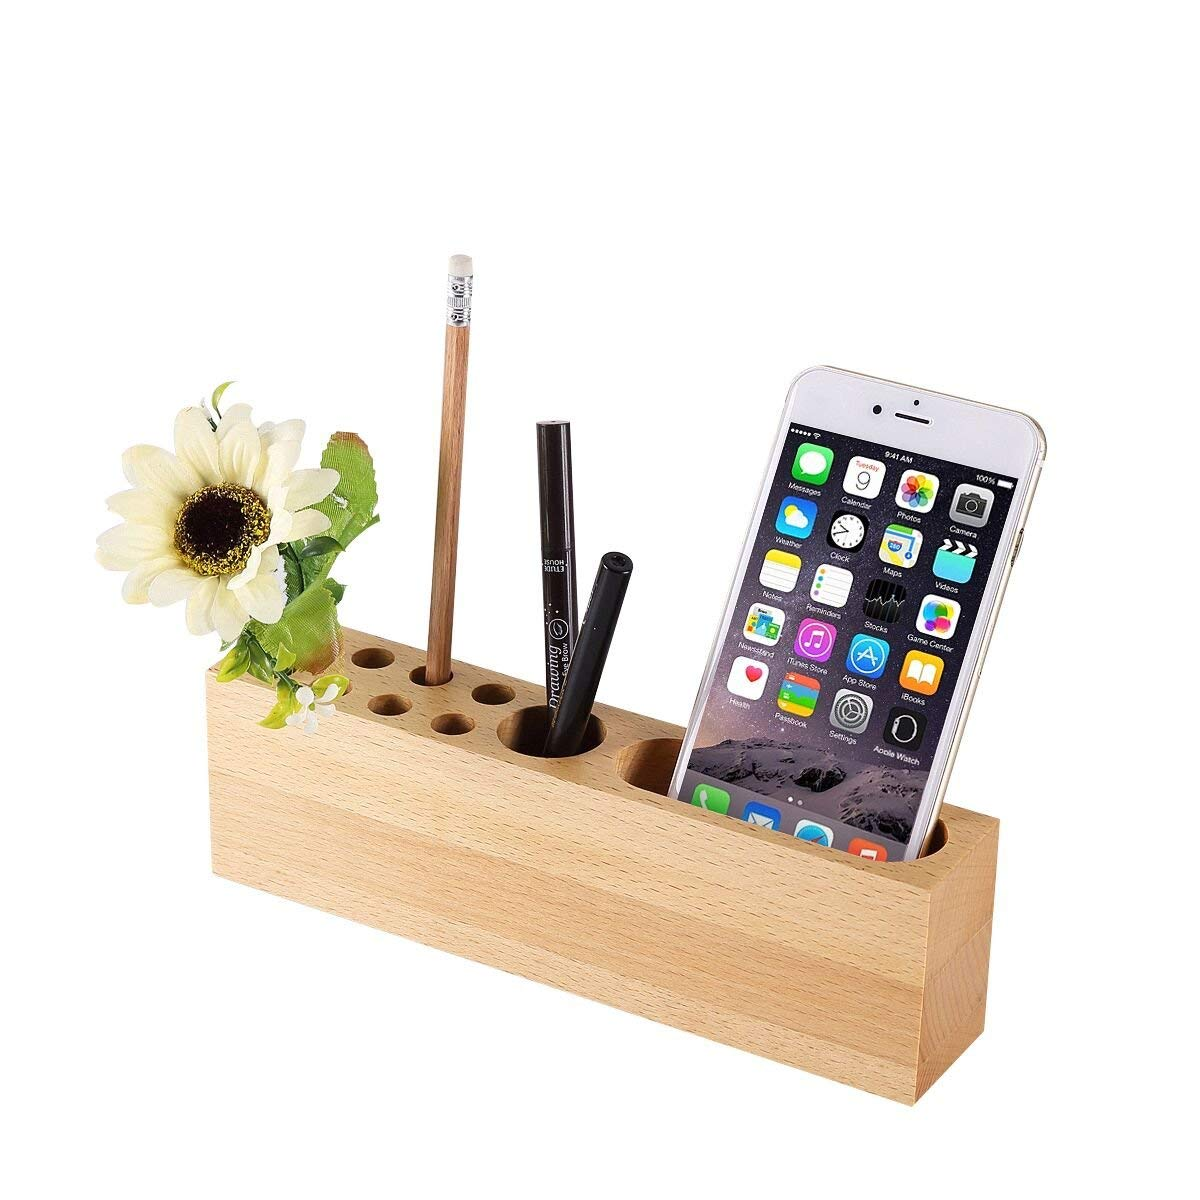 OHHOI Office Supplies Desktop Storage Box Stationery Solid Wood Pen Holders,Mobile Phone Stand Wood Pen Stand | 10 Slots Desk Organizer for Office, Living Room, Bath Room, and Kitchen